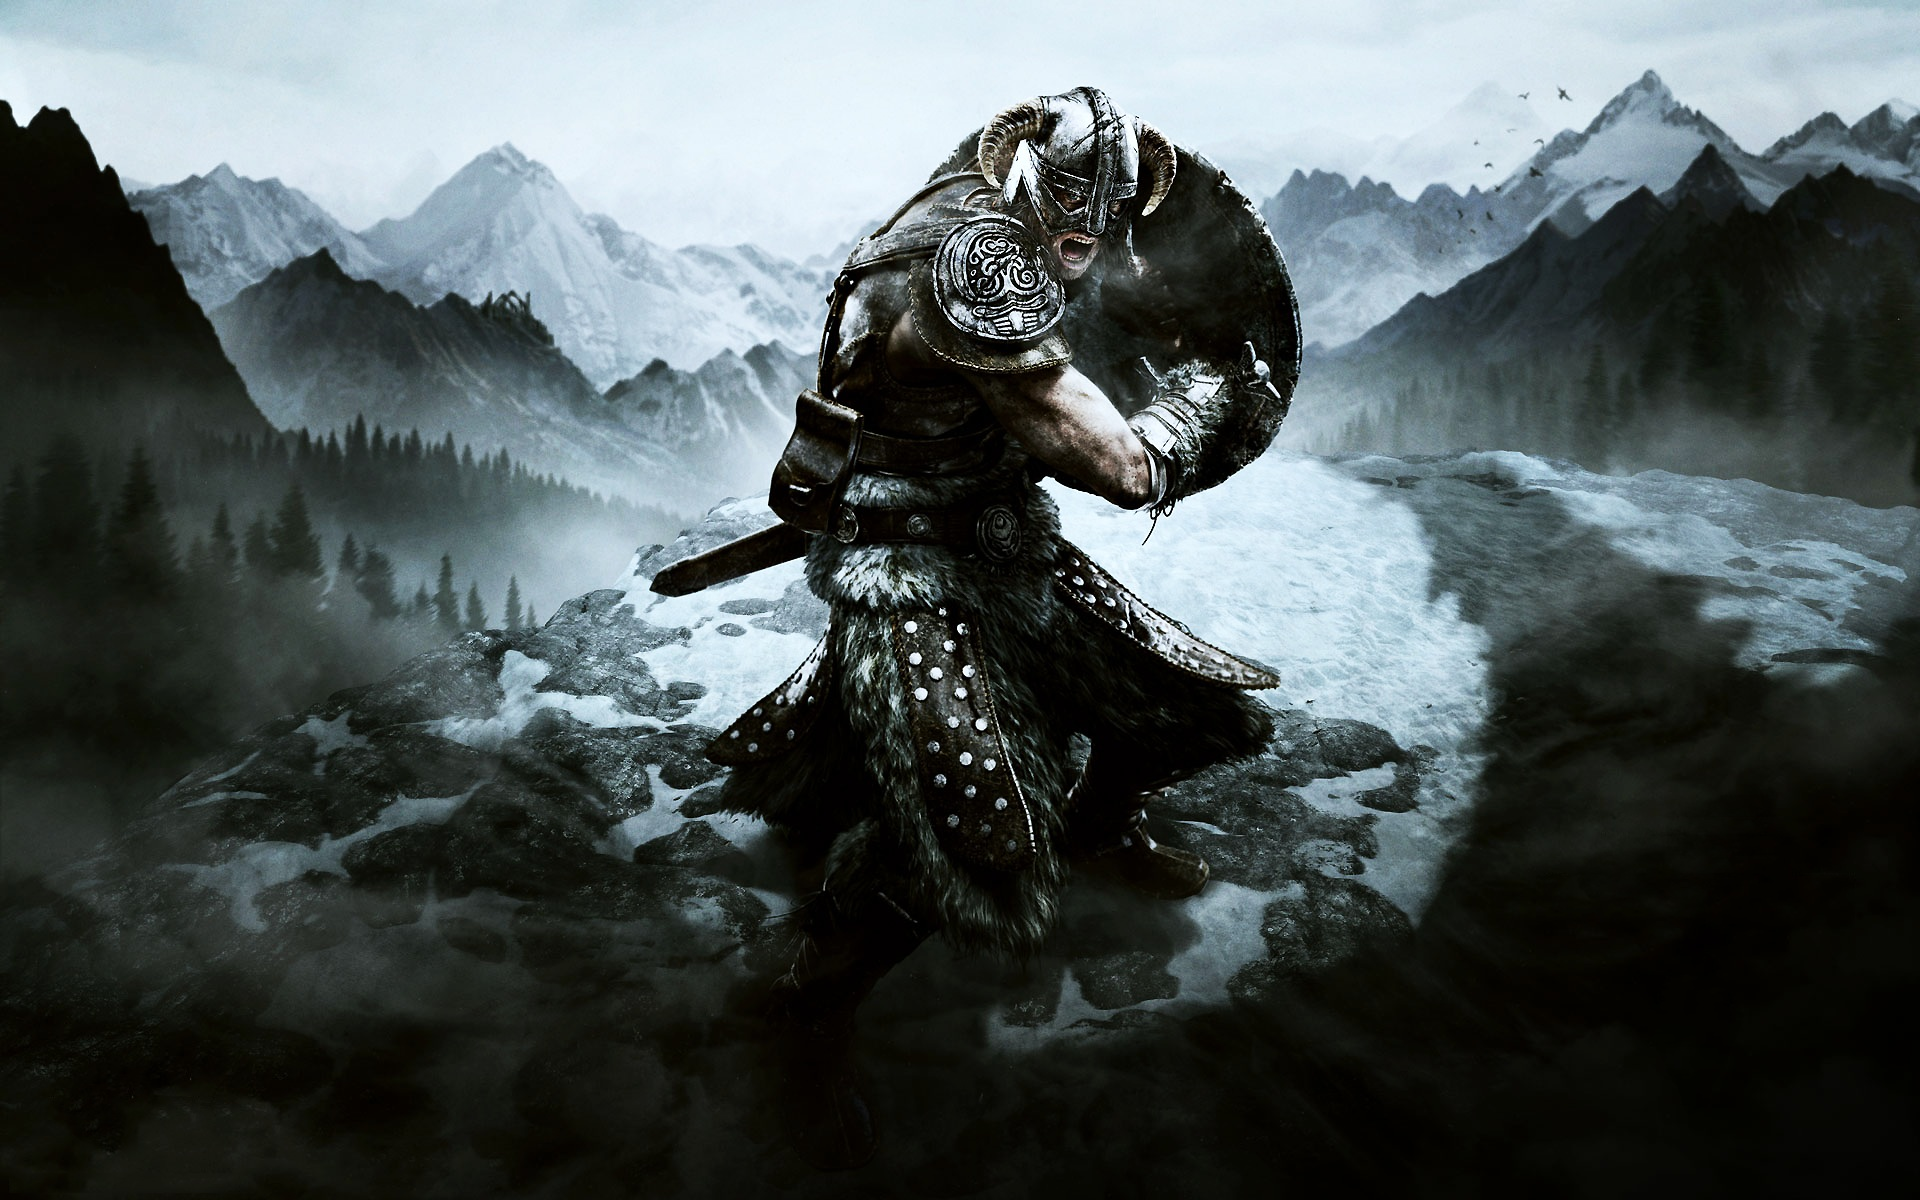 Warrior Art Wallpaper · Warrior Wallpaper · Warrior Wallpaper ...